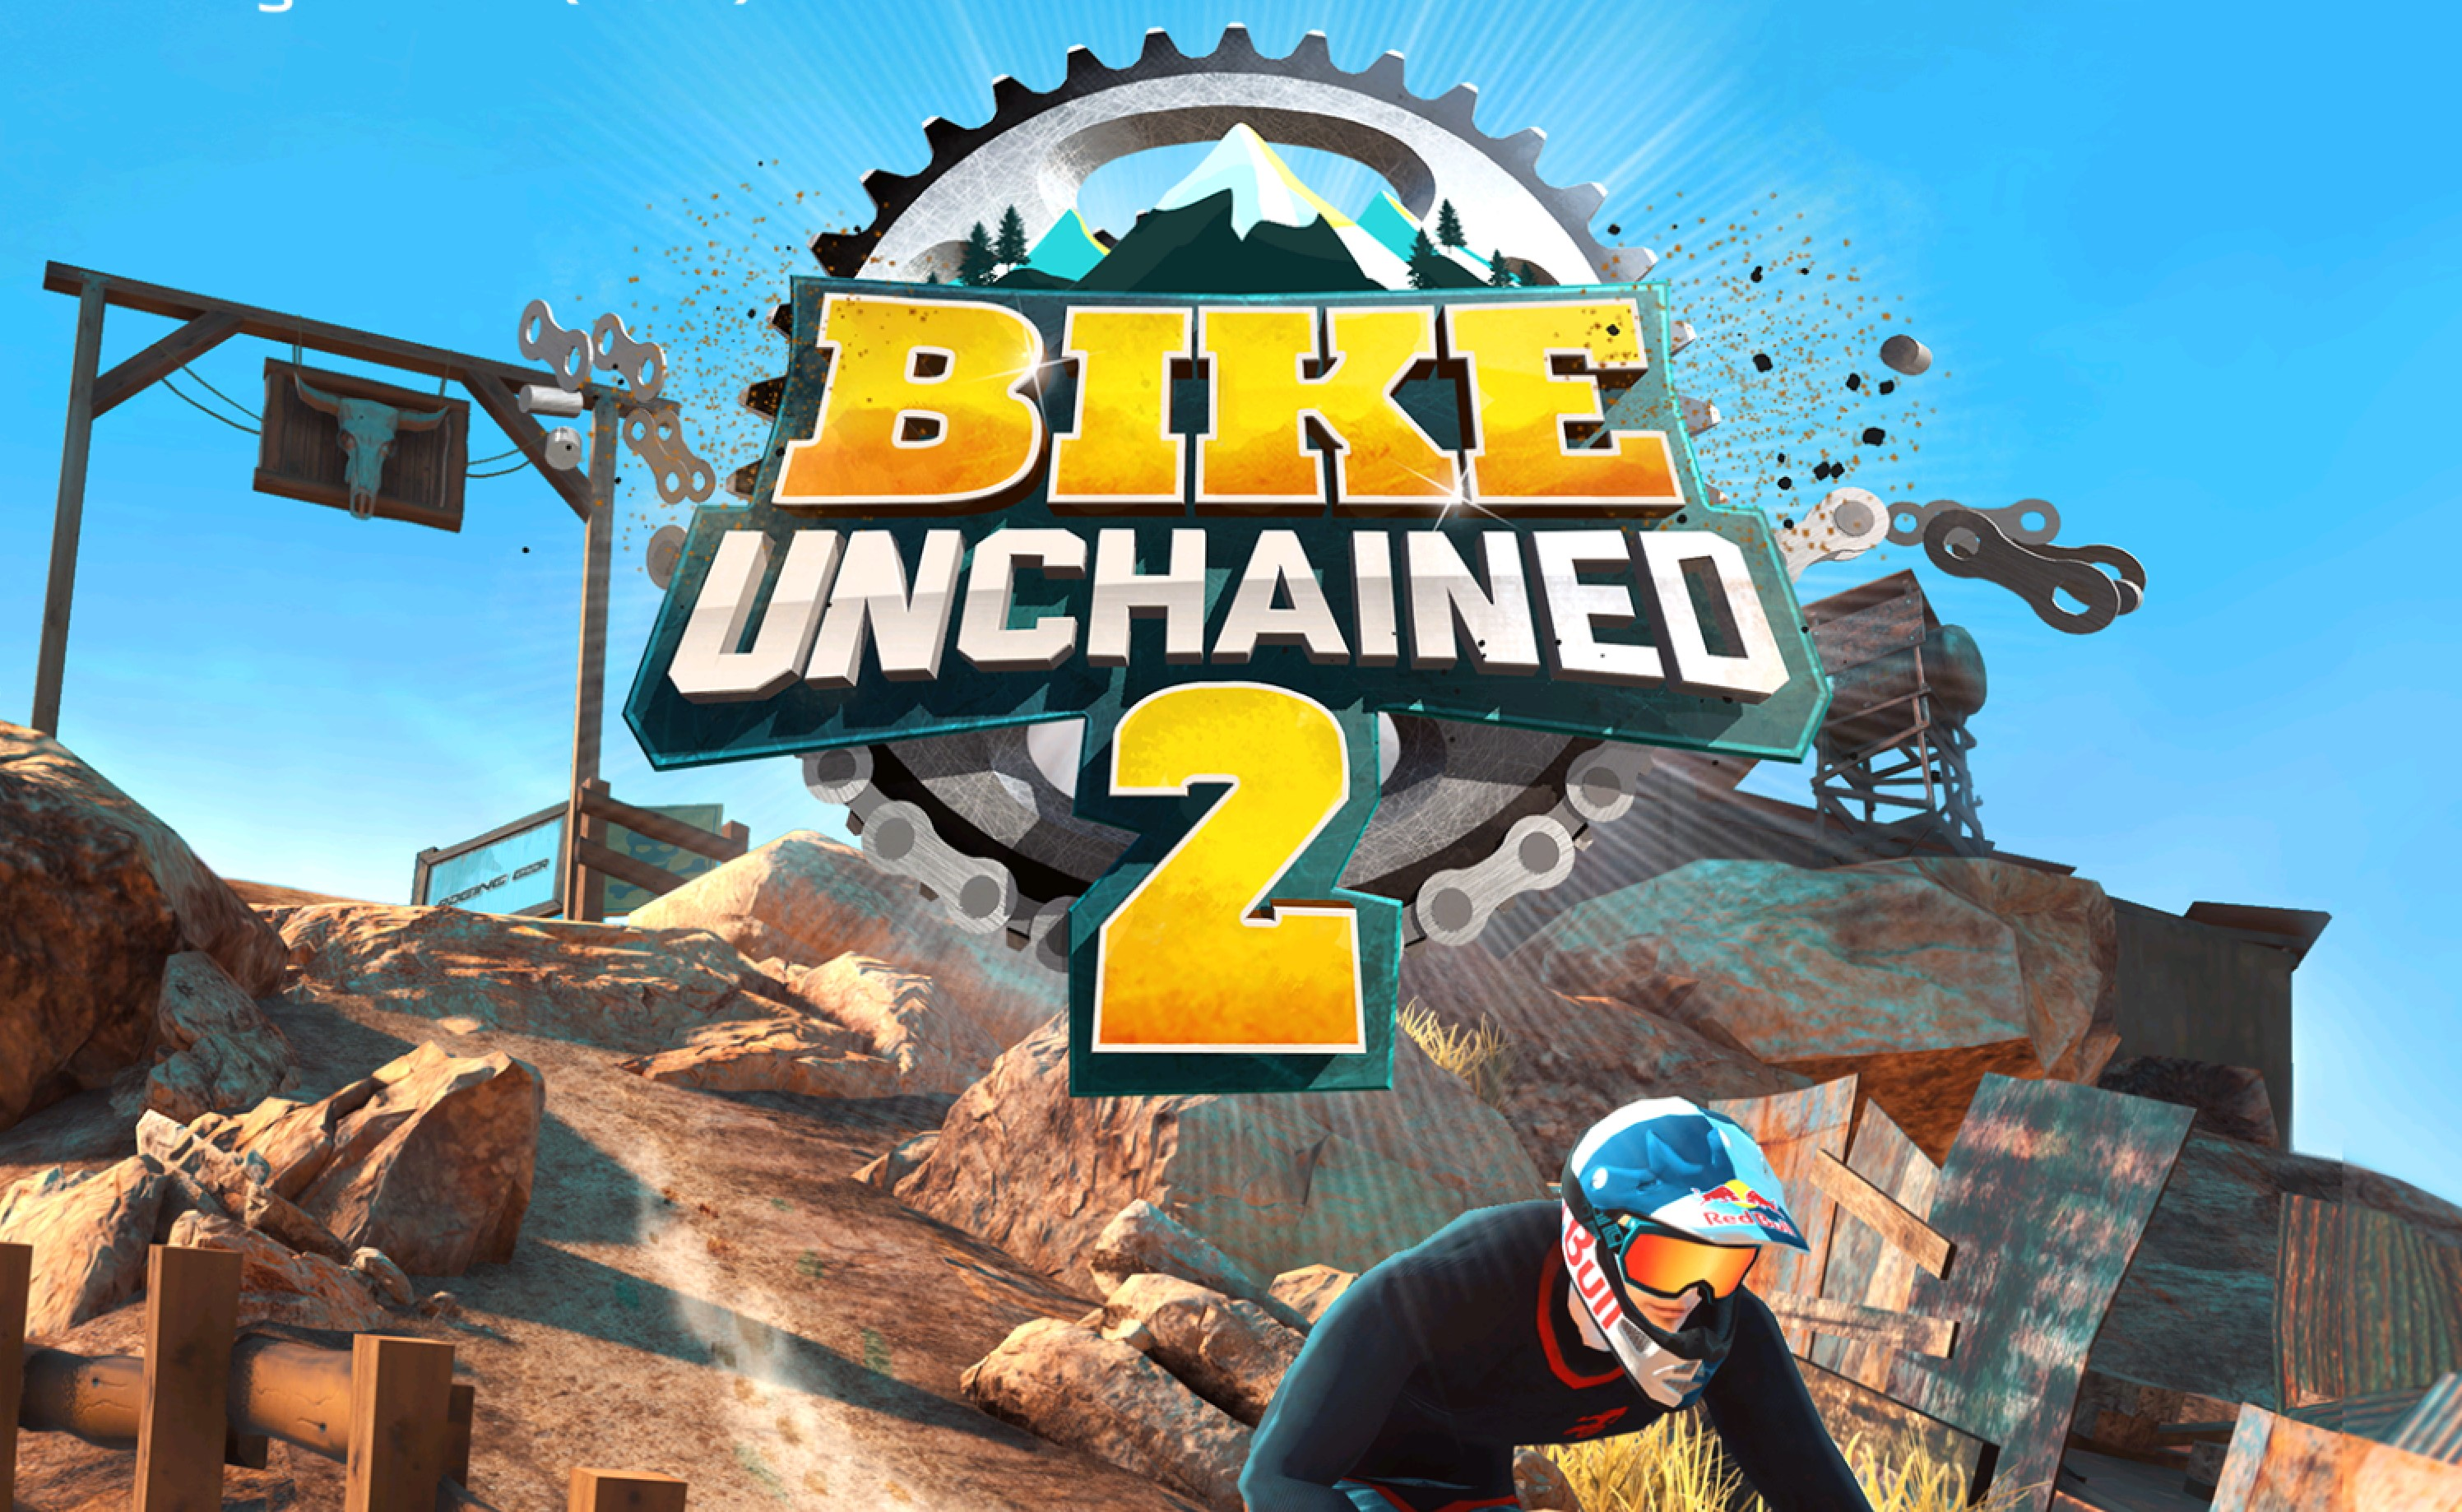 Bike Unchained 2 cheats and tips - All you need for gaining speed